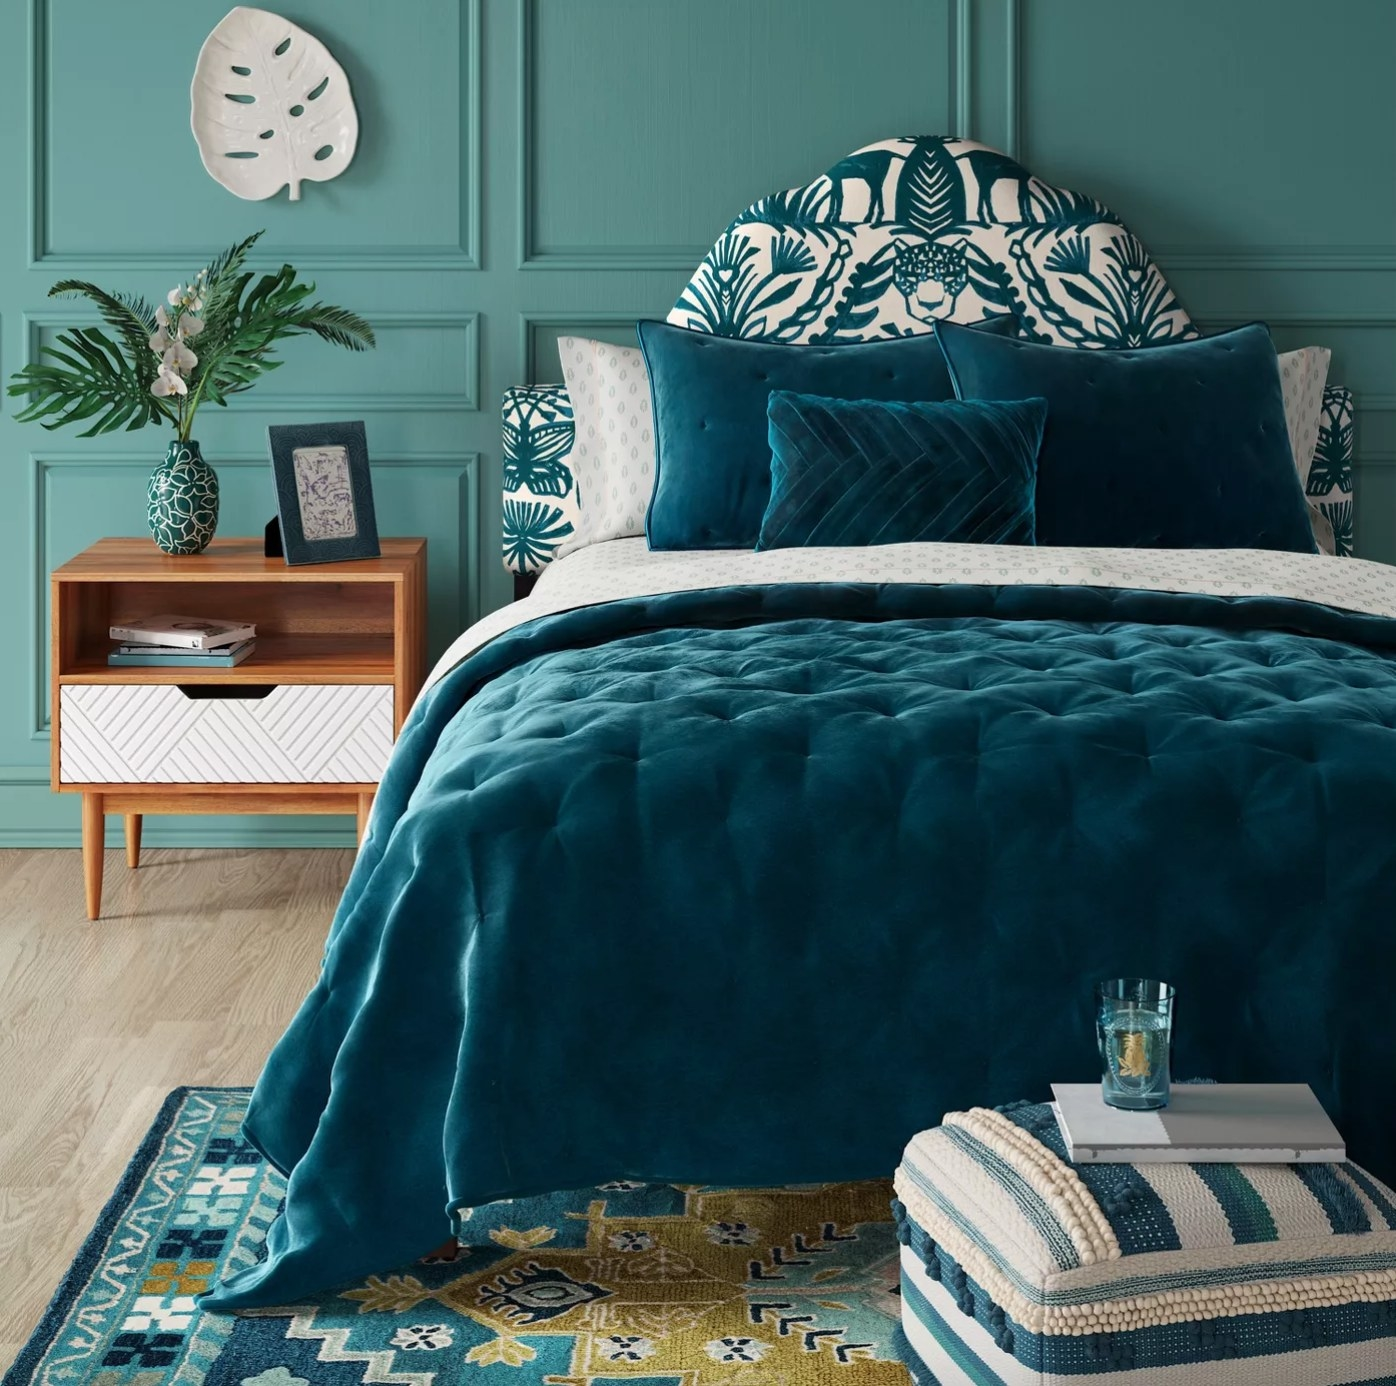 The midcentury modern nightstand in wood with a white drawer next to a bed with blue bedding